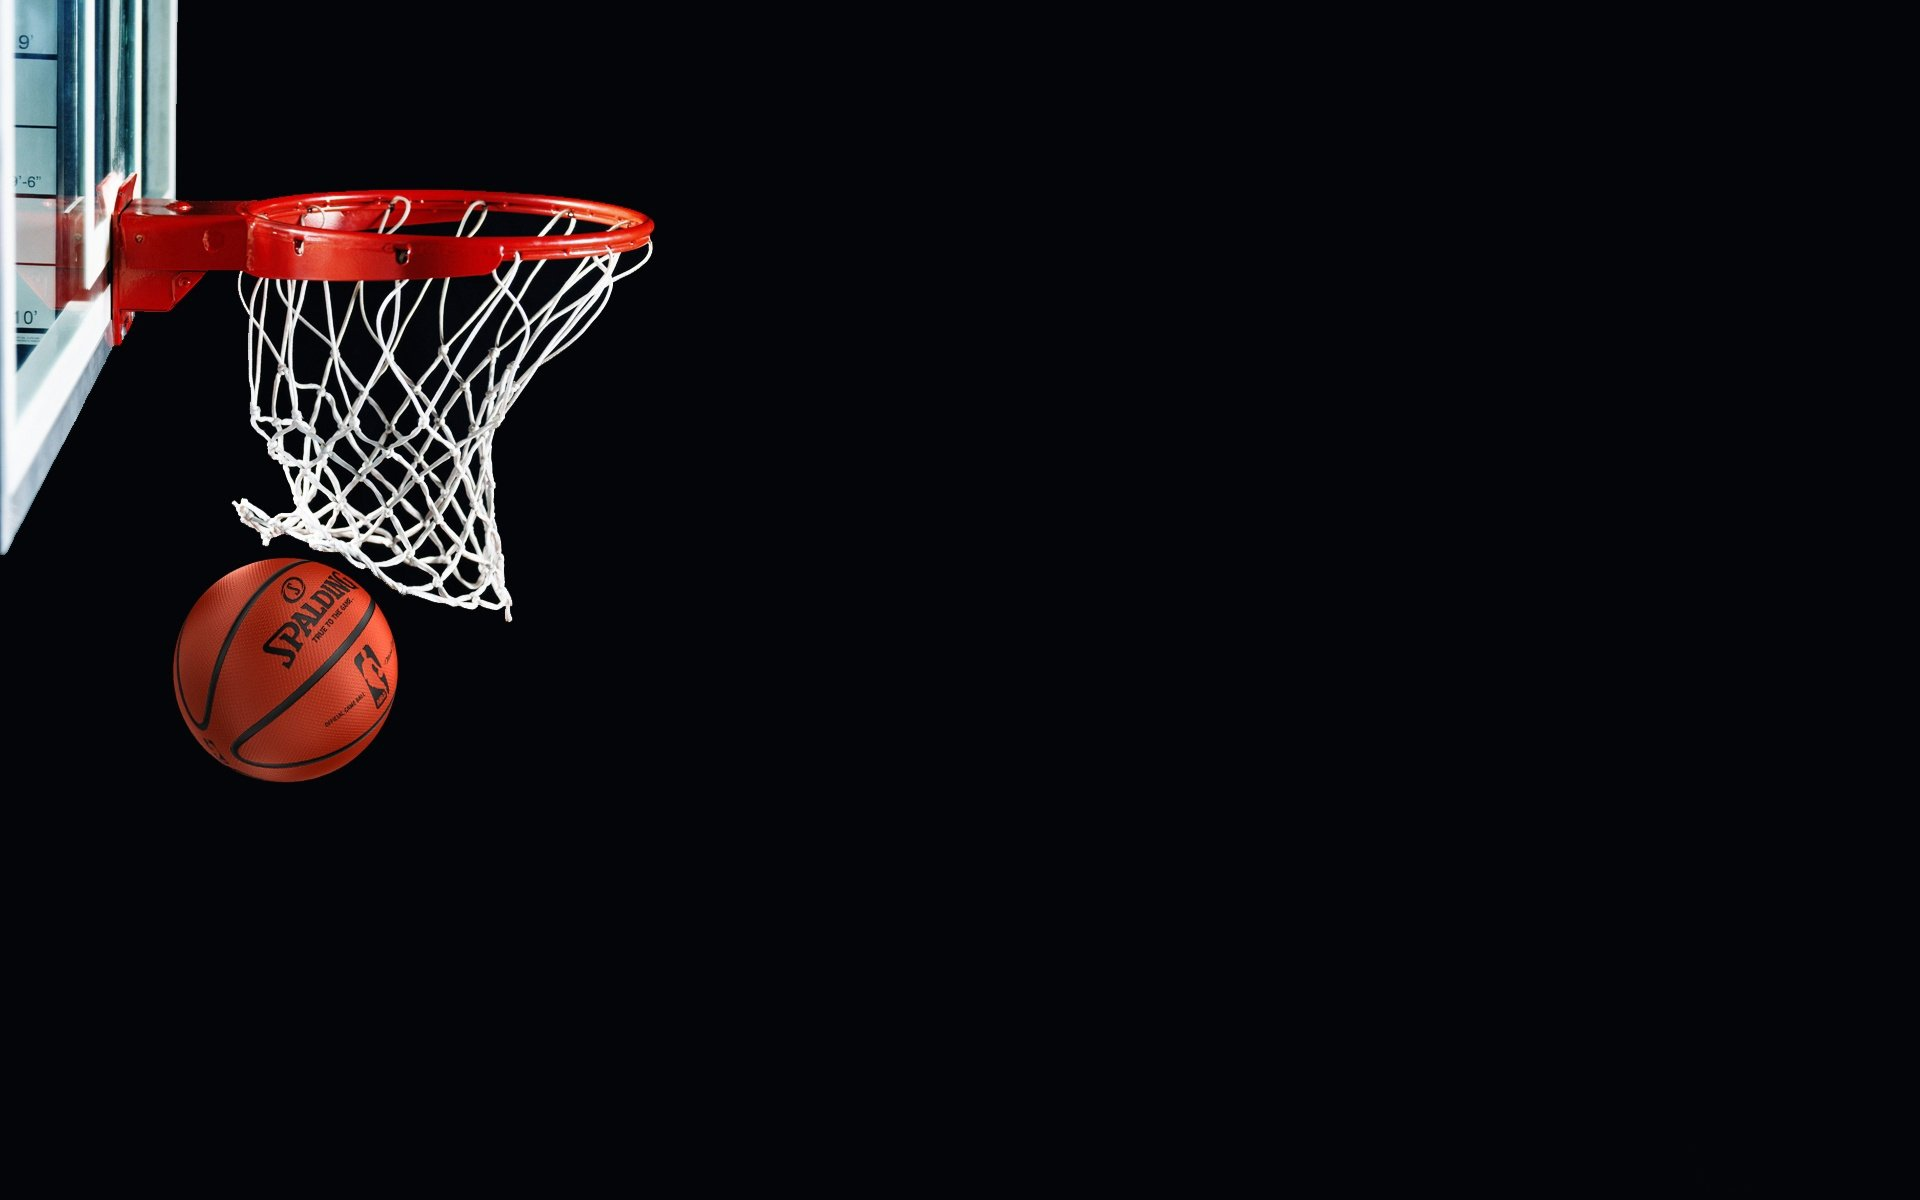 Wallpapers Of Basketball